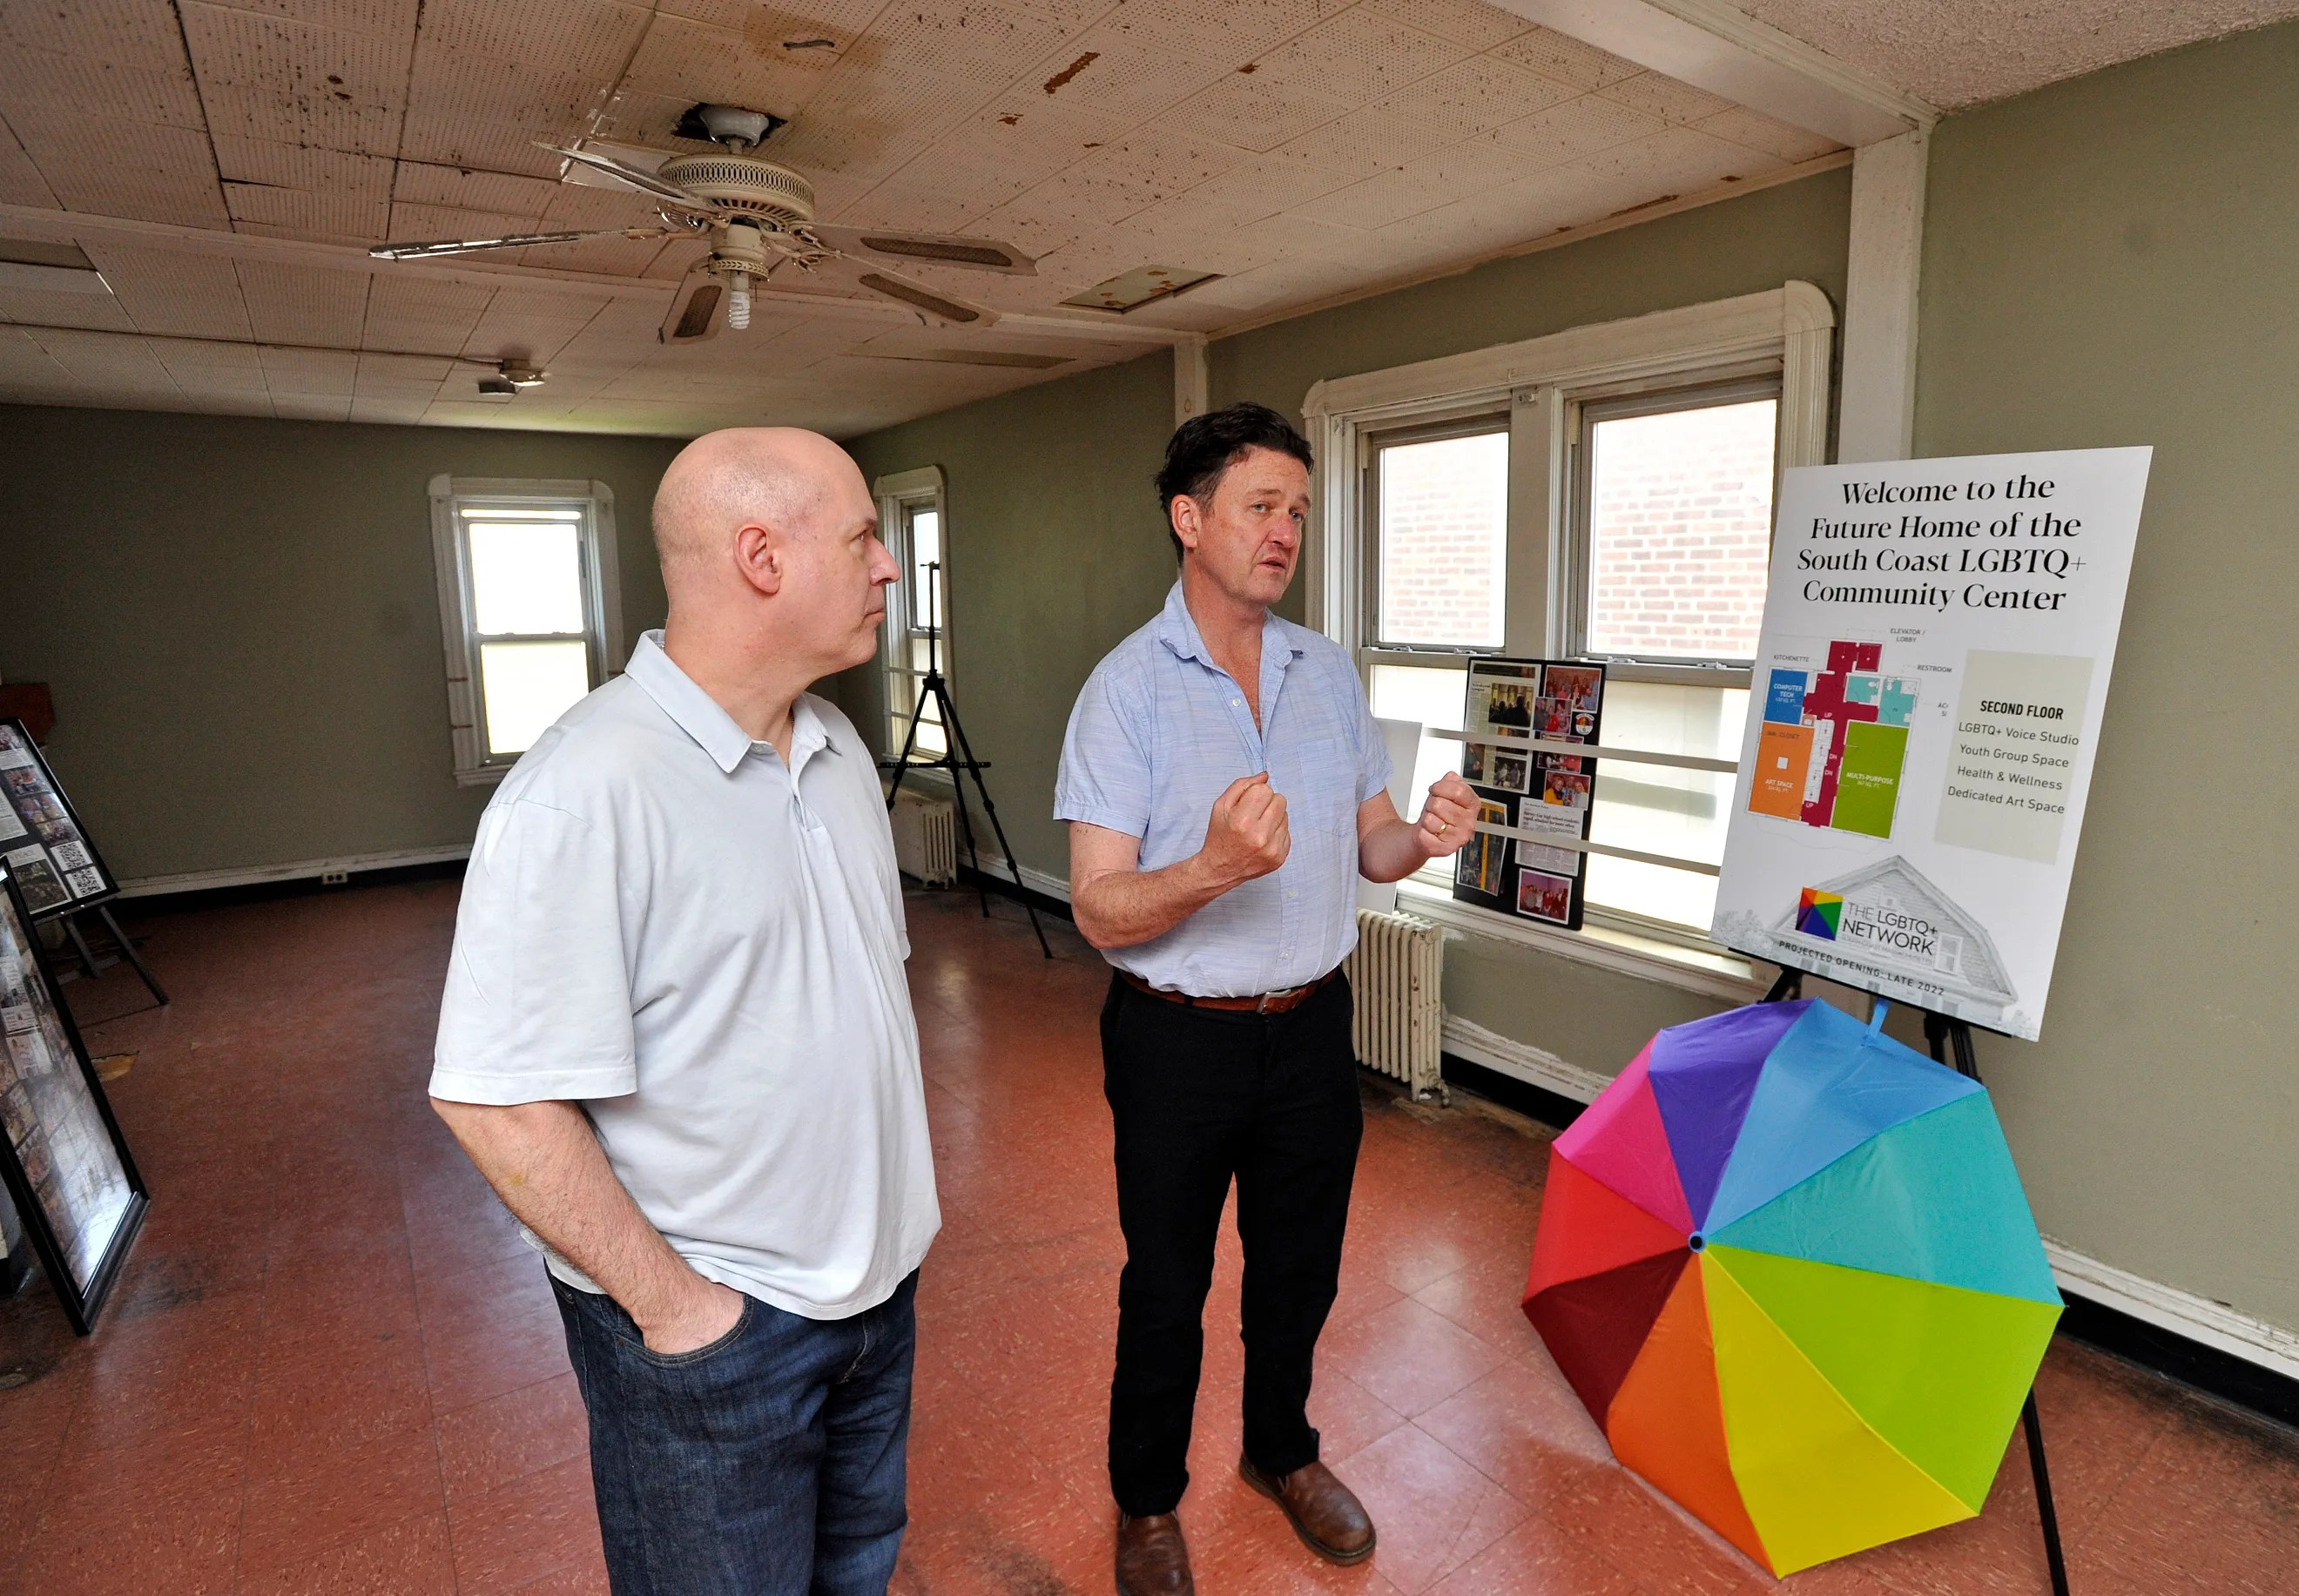 Kerry Zeida and Andy Pollock talk about the renovations to the South Coast LGBTQ Community Center that will be opening on 60 Eighth St. in New Bedford.